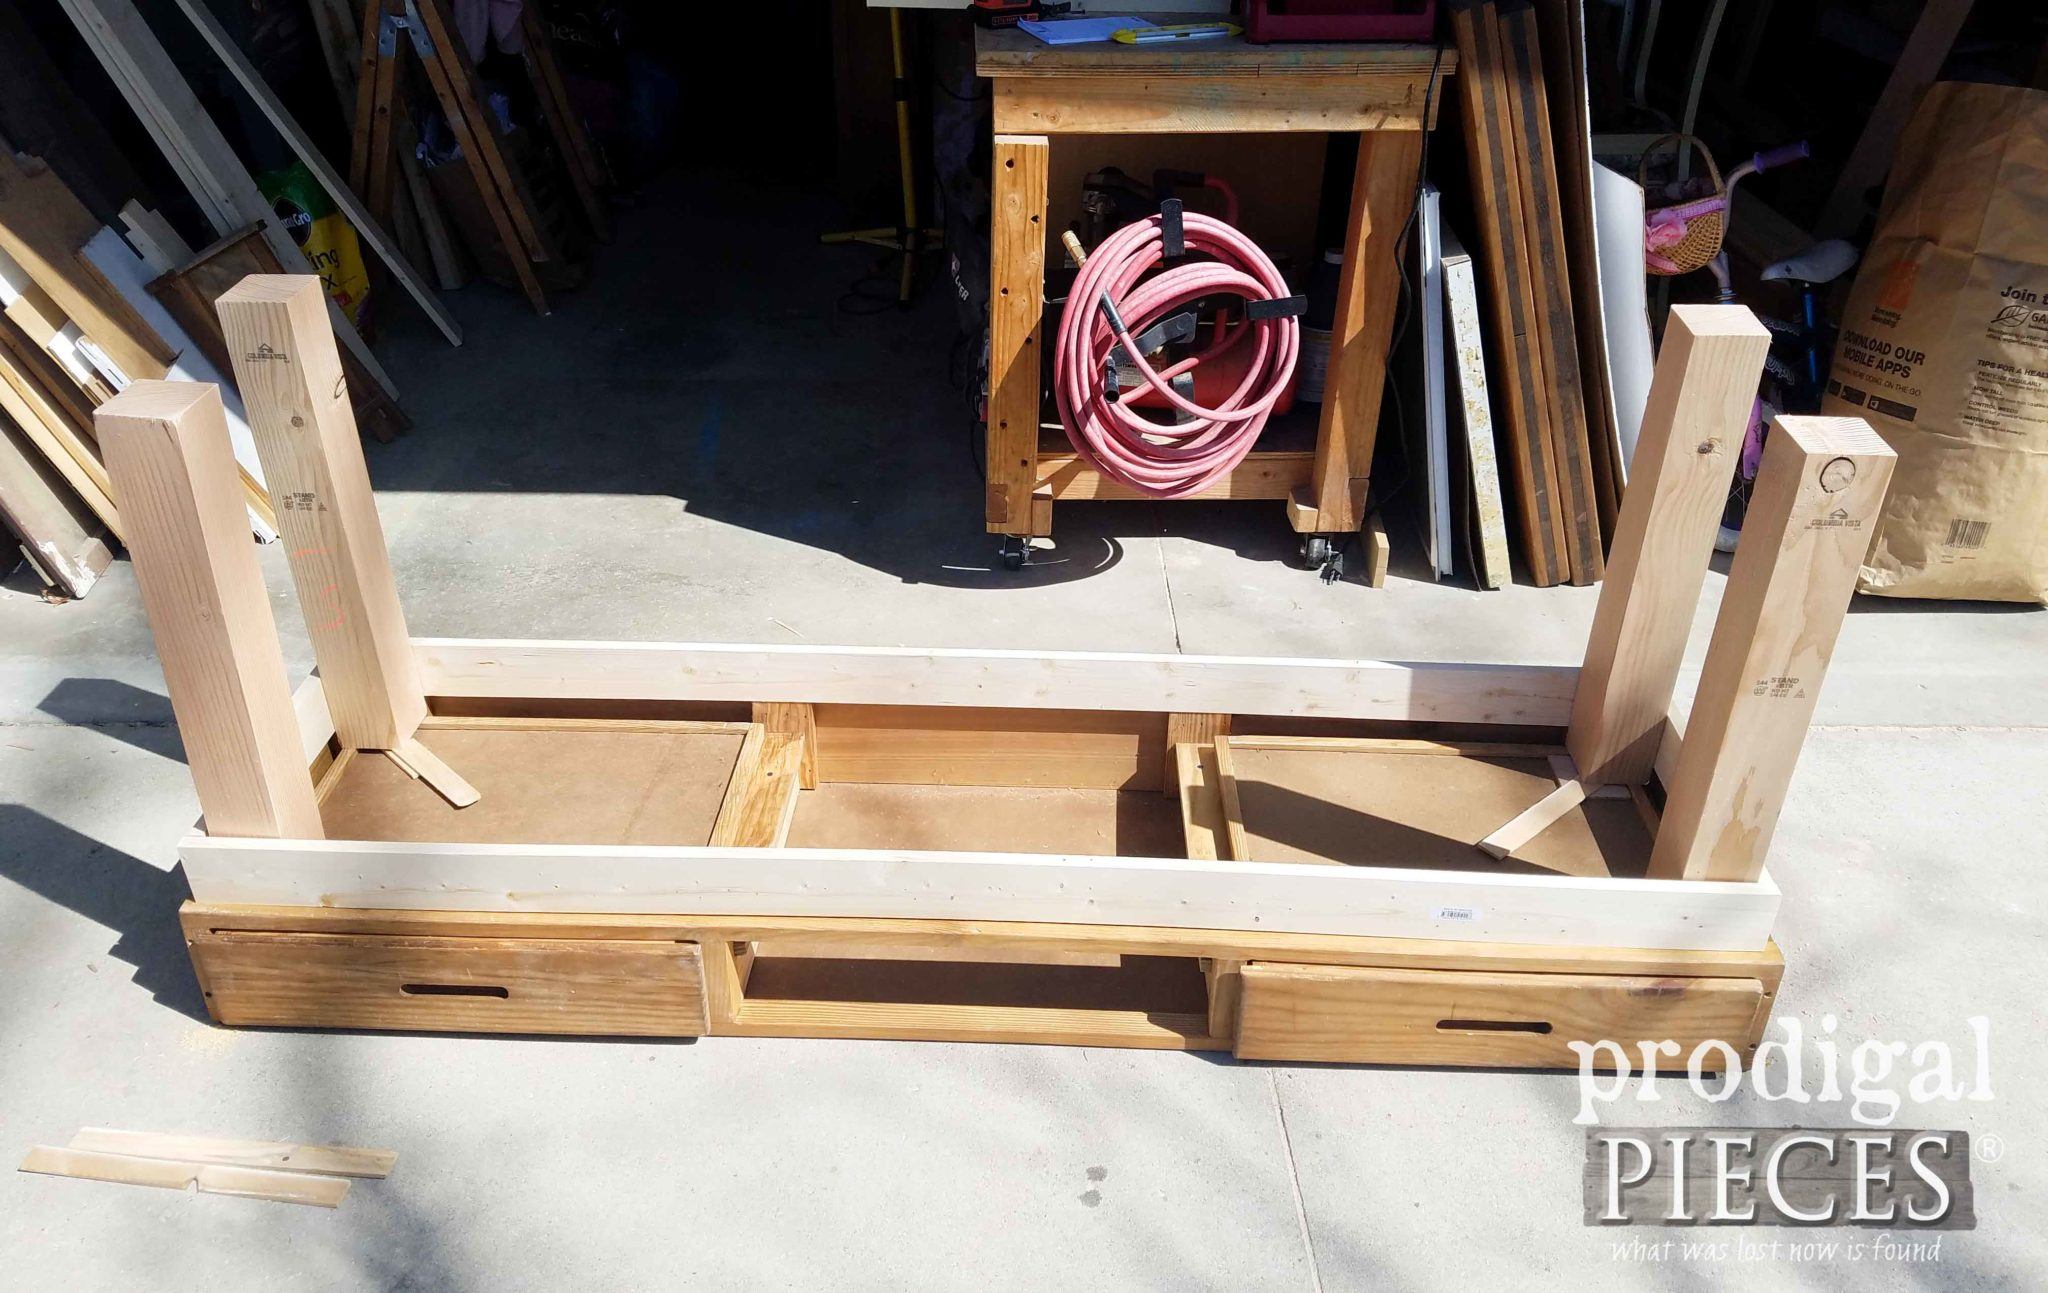 Upside Down Workbench Being Built by Larissa of Prodigal Pieces | prodigalpieces.com